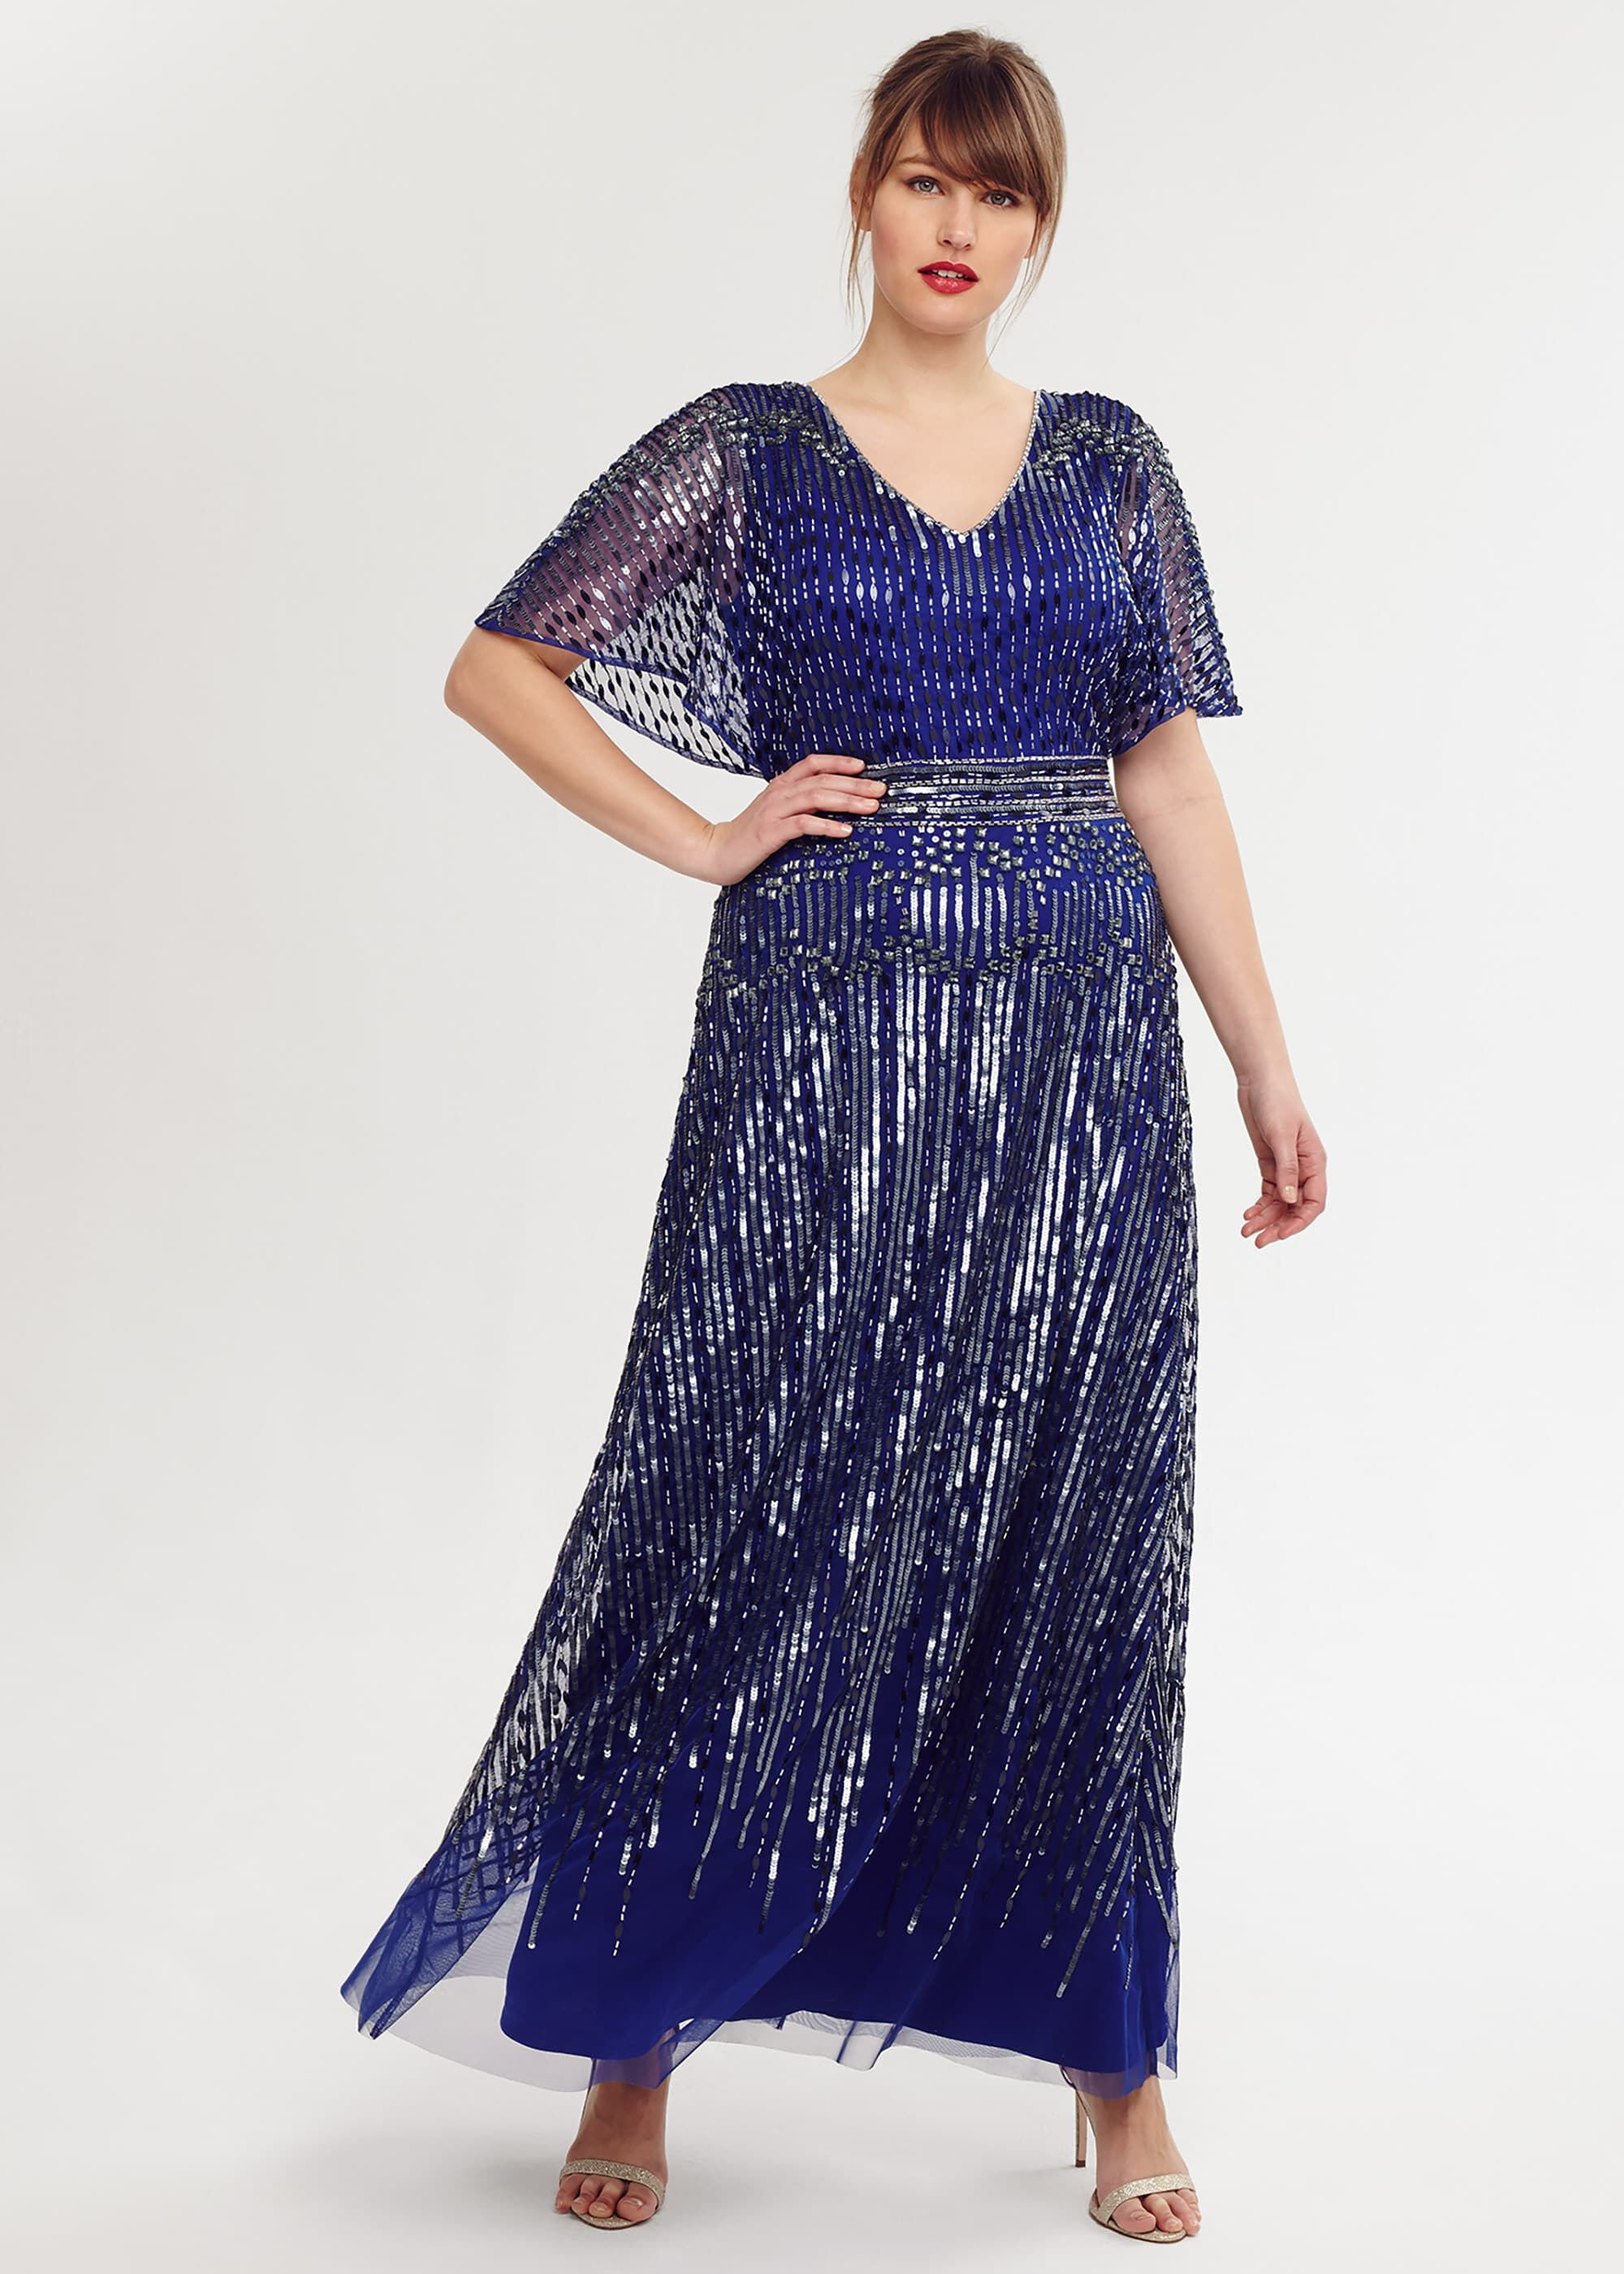 Studio 8 Athena Beaded Maxi Dress, Blue, Maxi, Occasion Dress